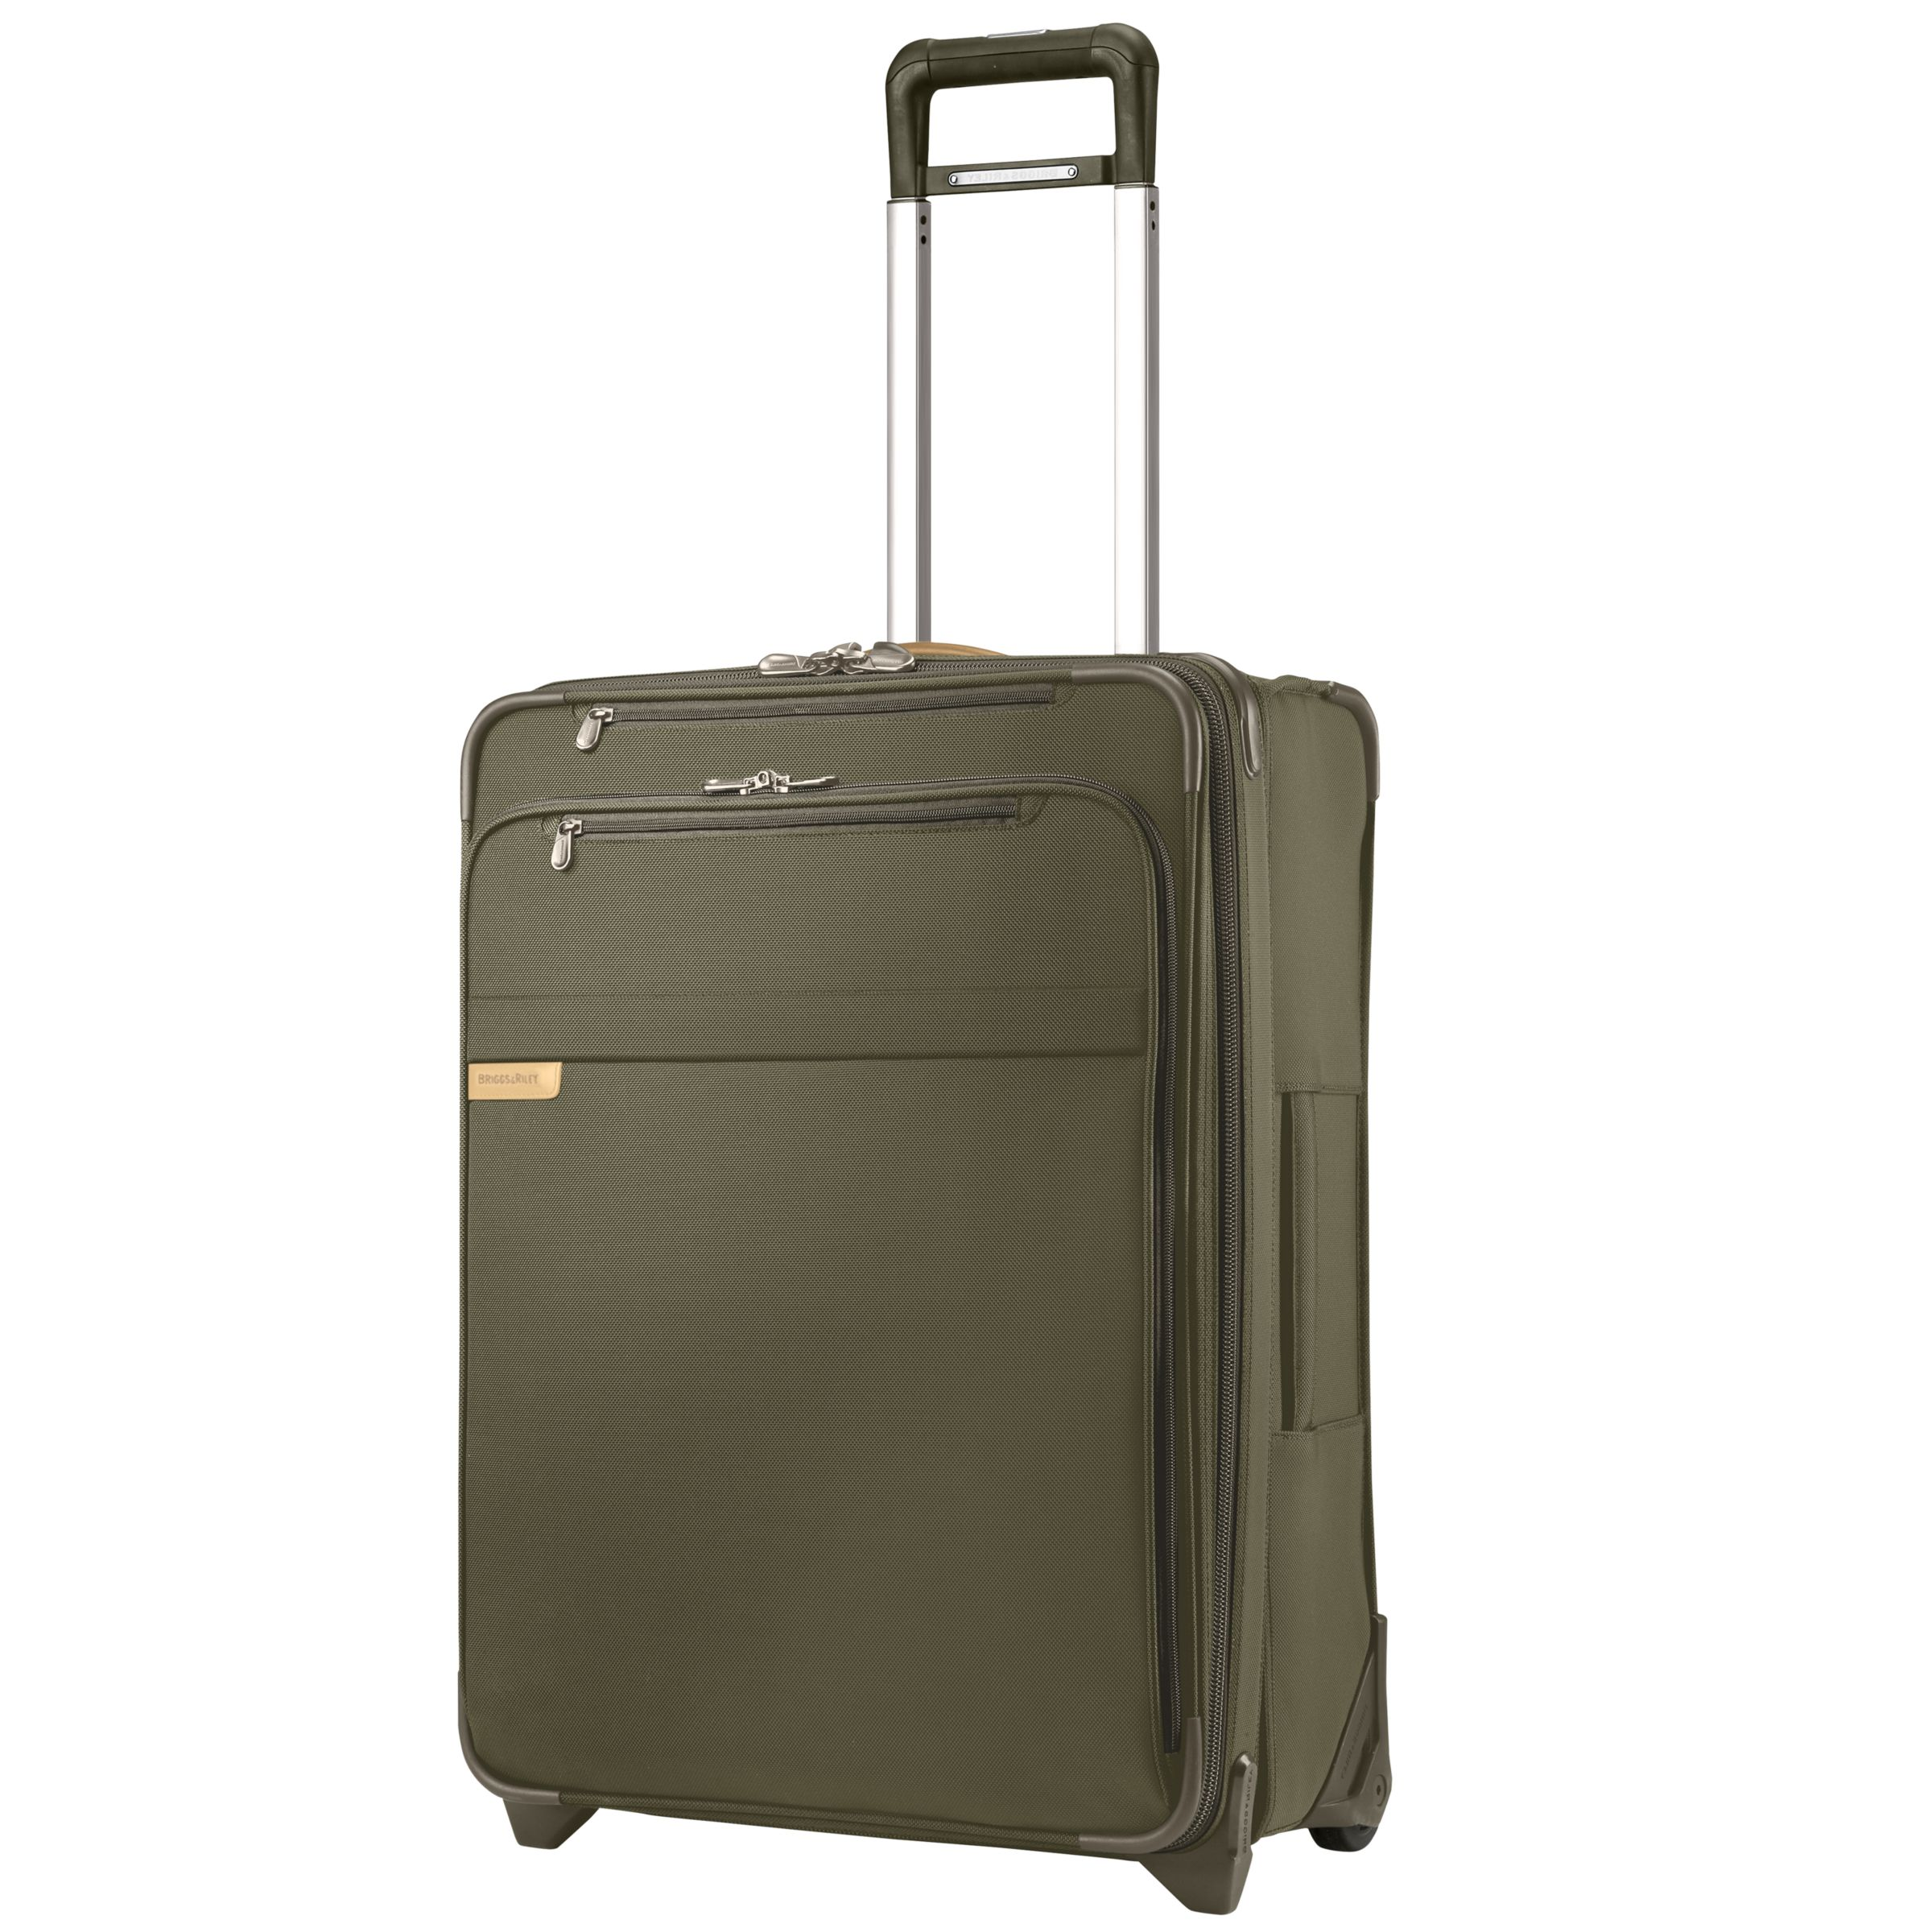 Briggs & Riley Baseline Expandable 2-Wheel Suitcase, Olive, Medium